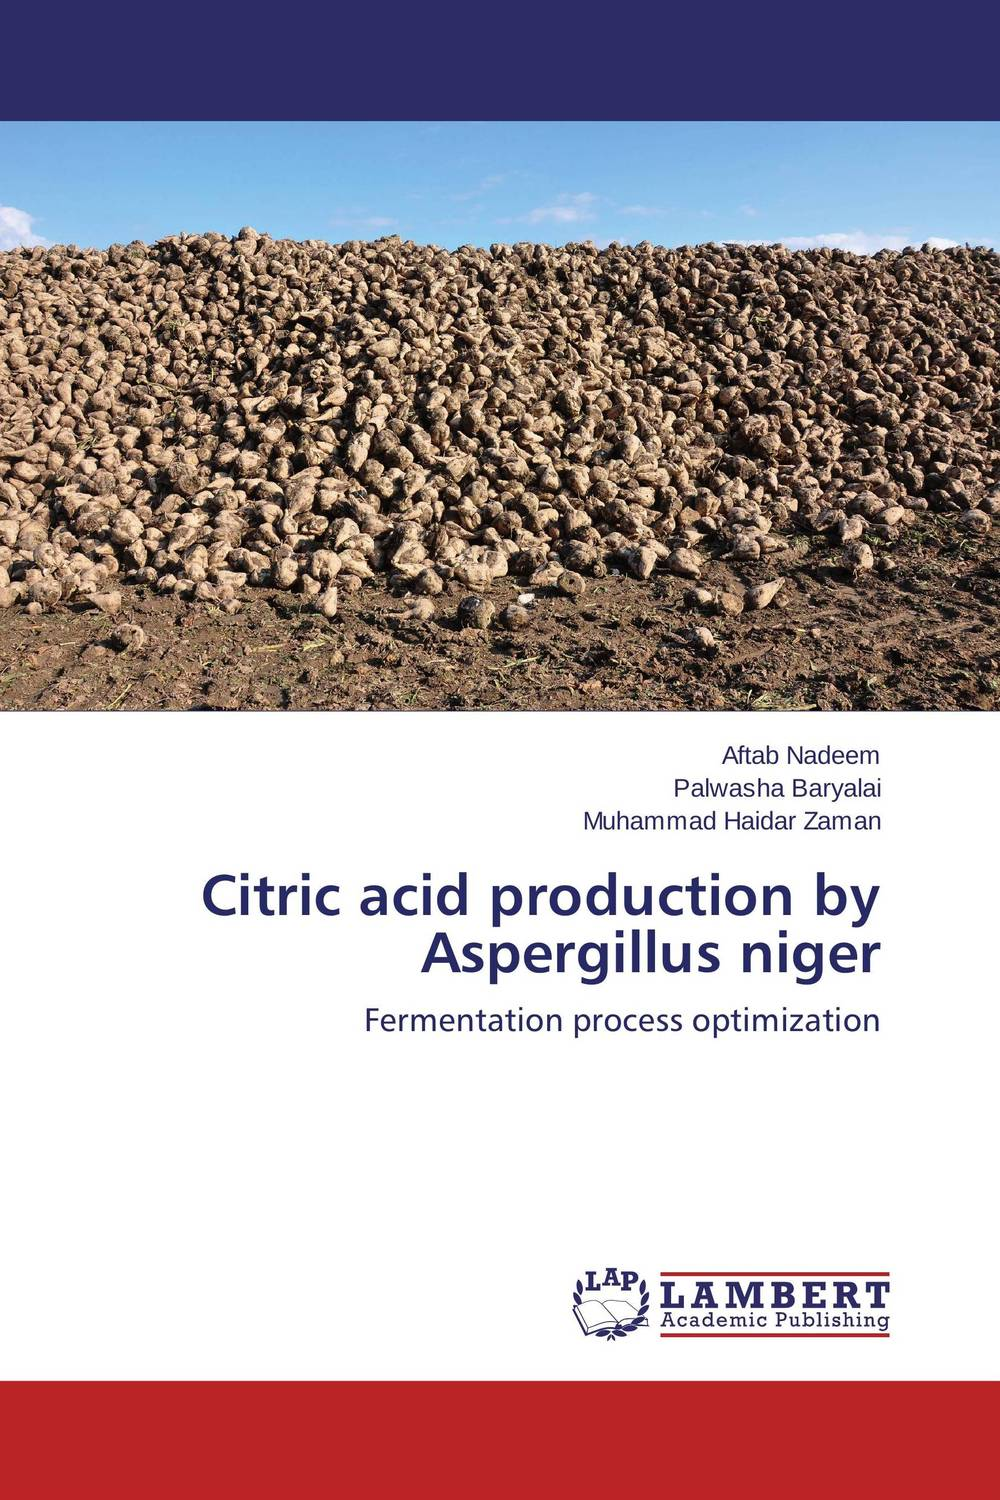 Citric acid production by Aspergillus niger electrolytic conductance of citric acid